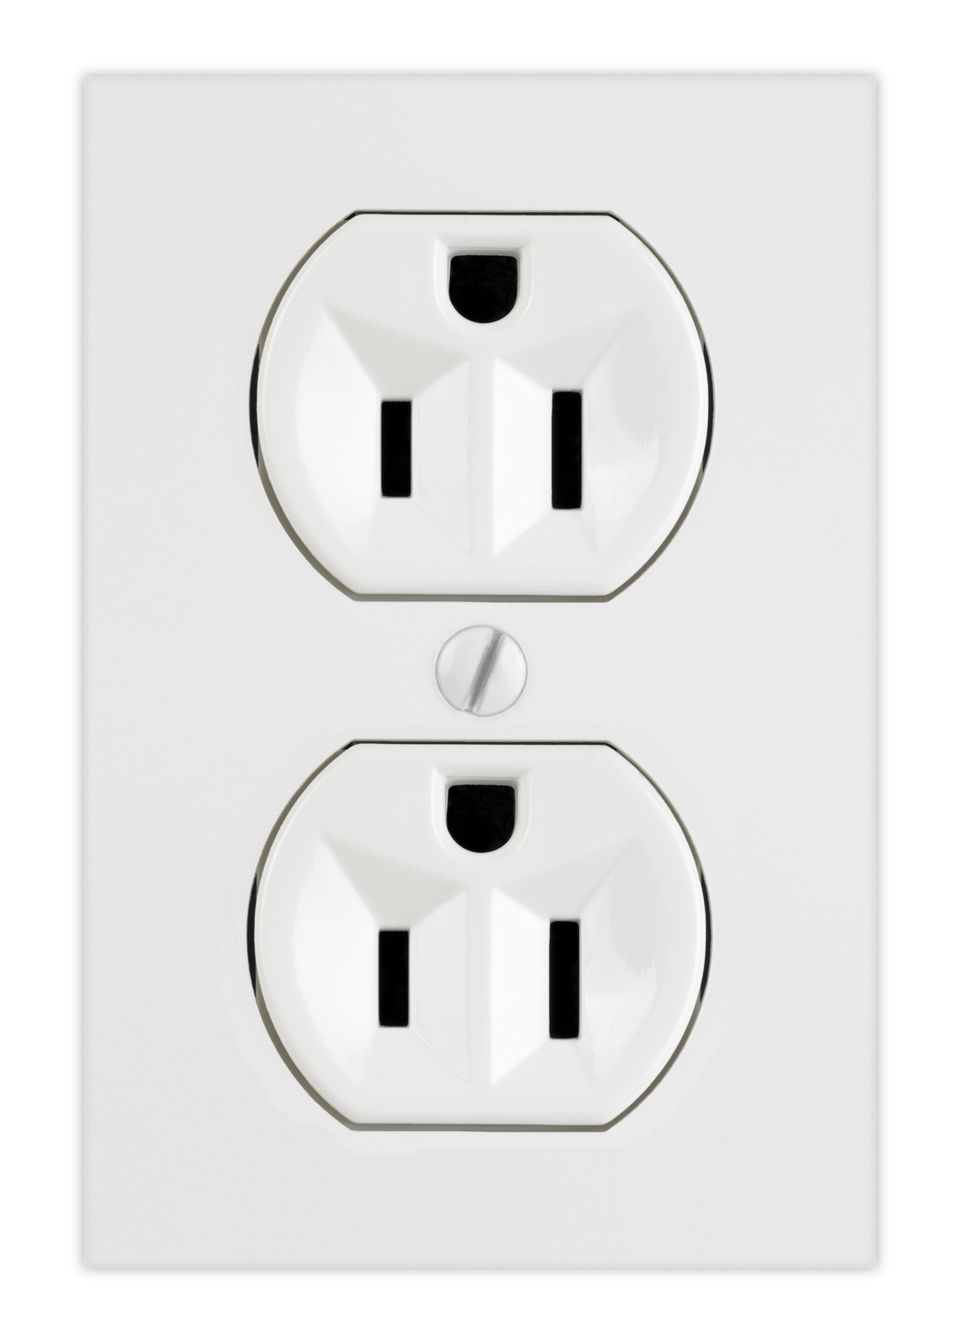 Upside-Down Electrical Outlet